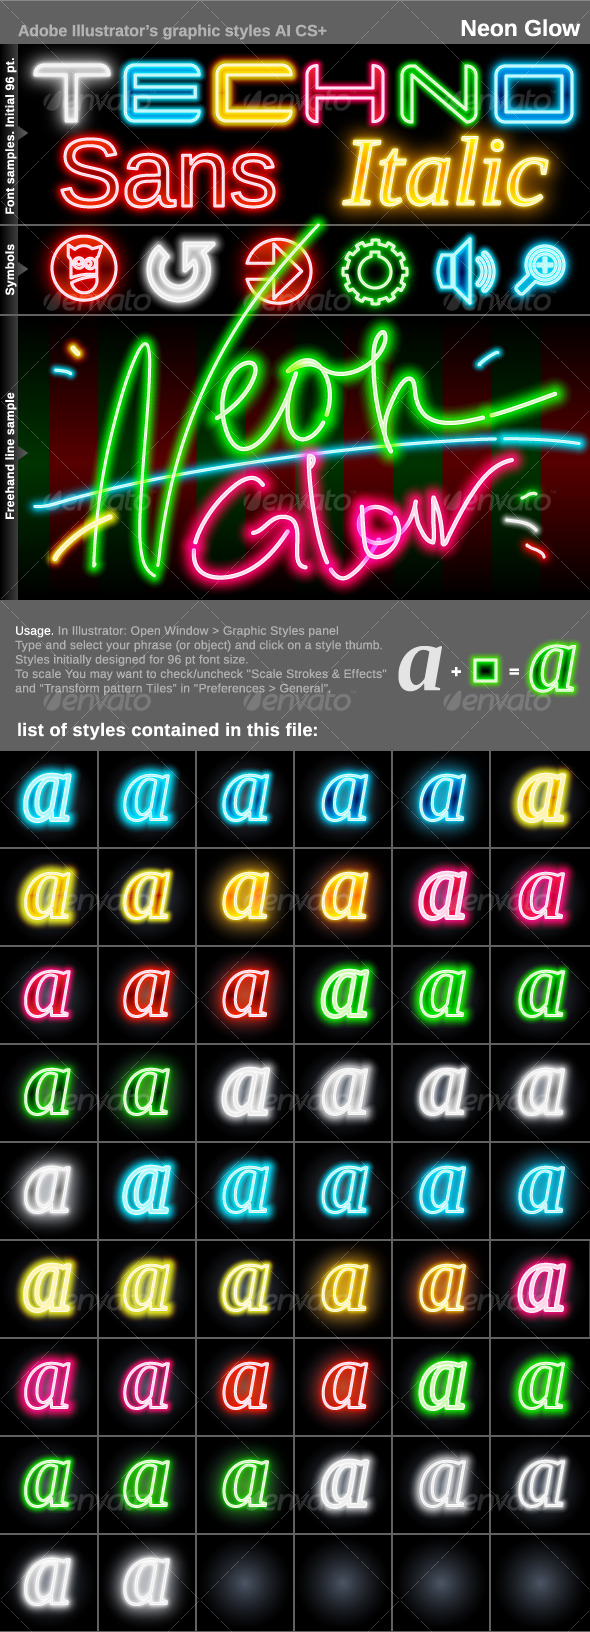 GraphicRiver Illustrator Graphic Styles Neon Glow 121050